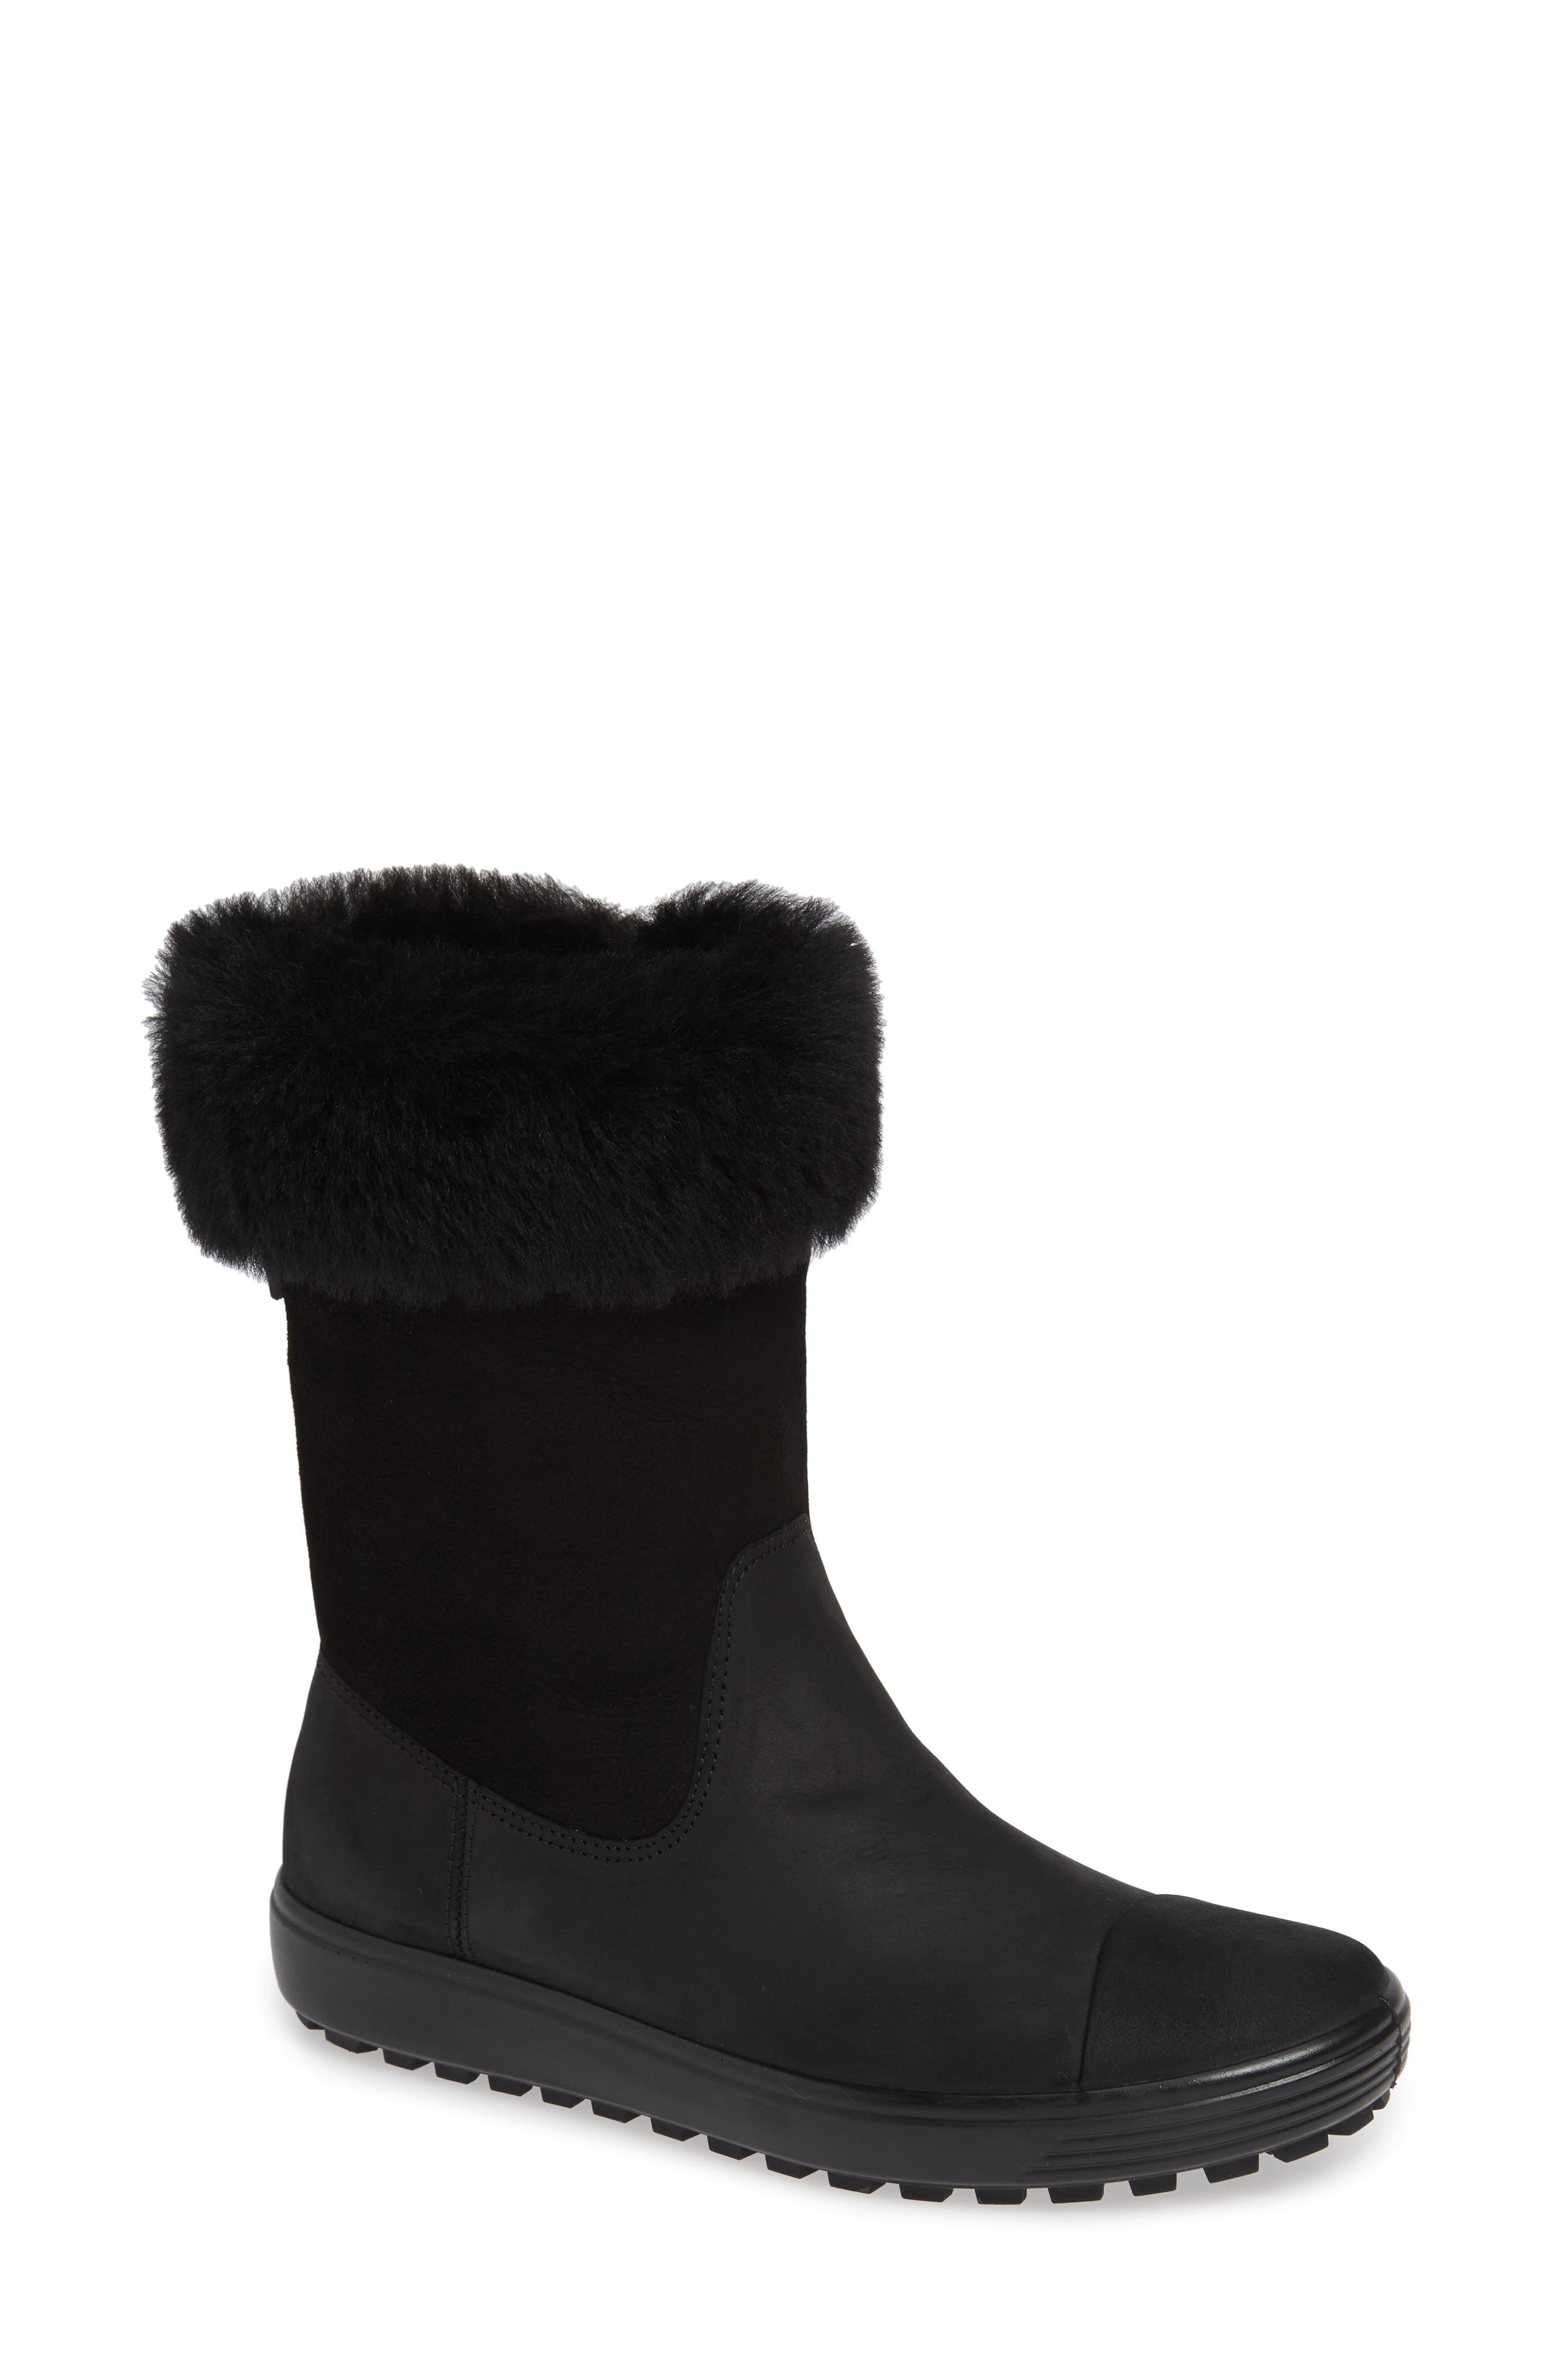 Ecco Soft 7 Tred Waterproof Genuine Shearling Lined Boot, Black